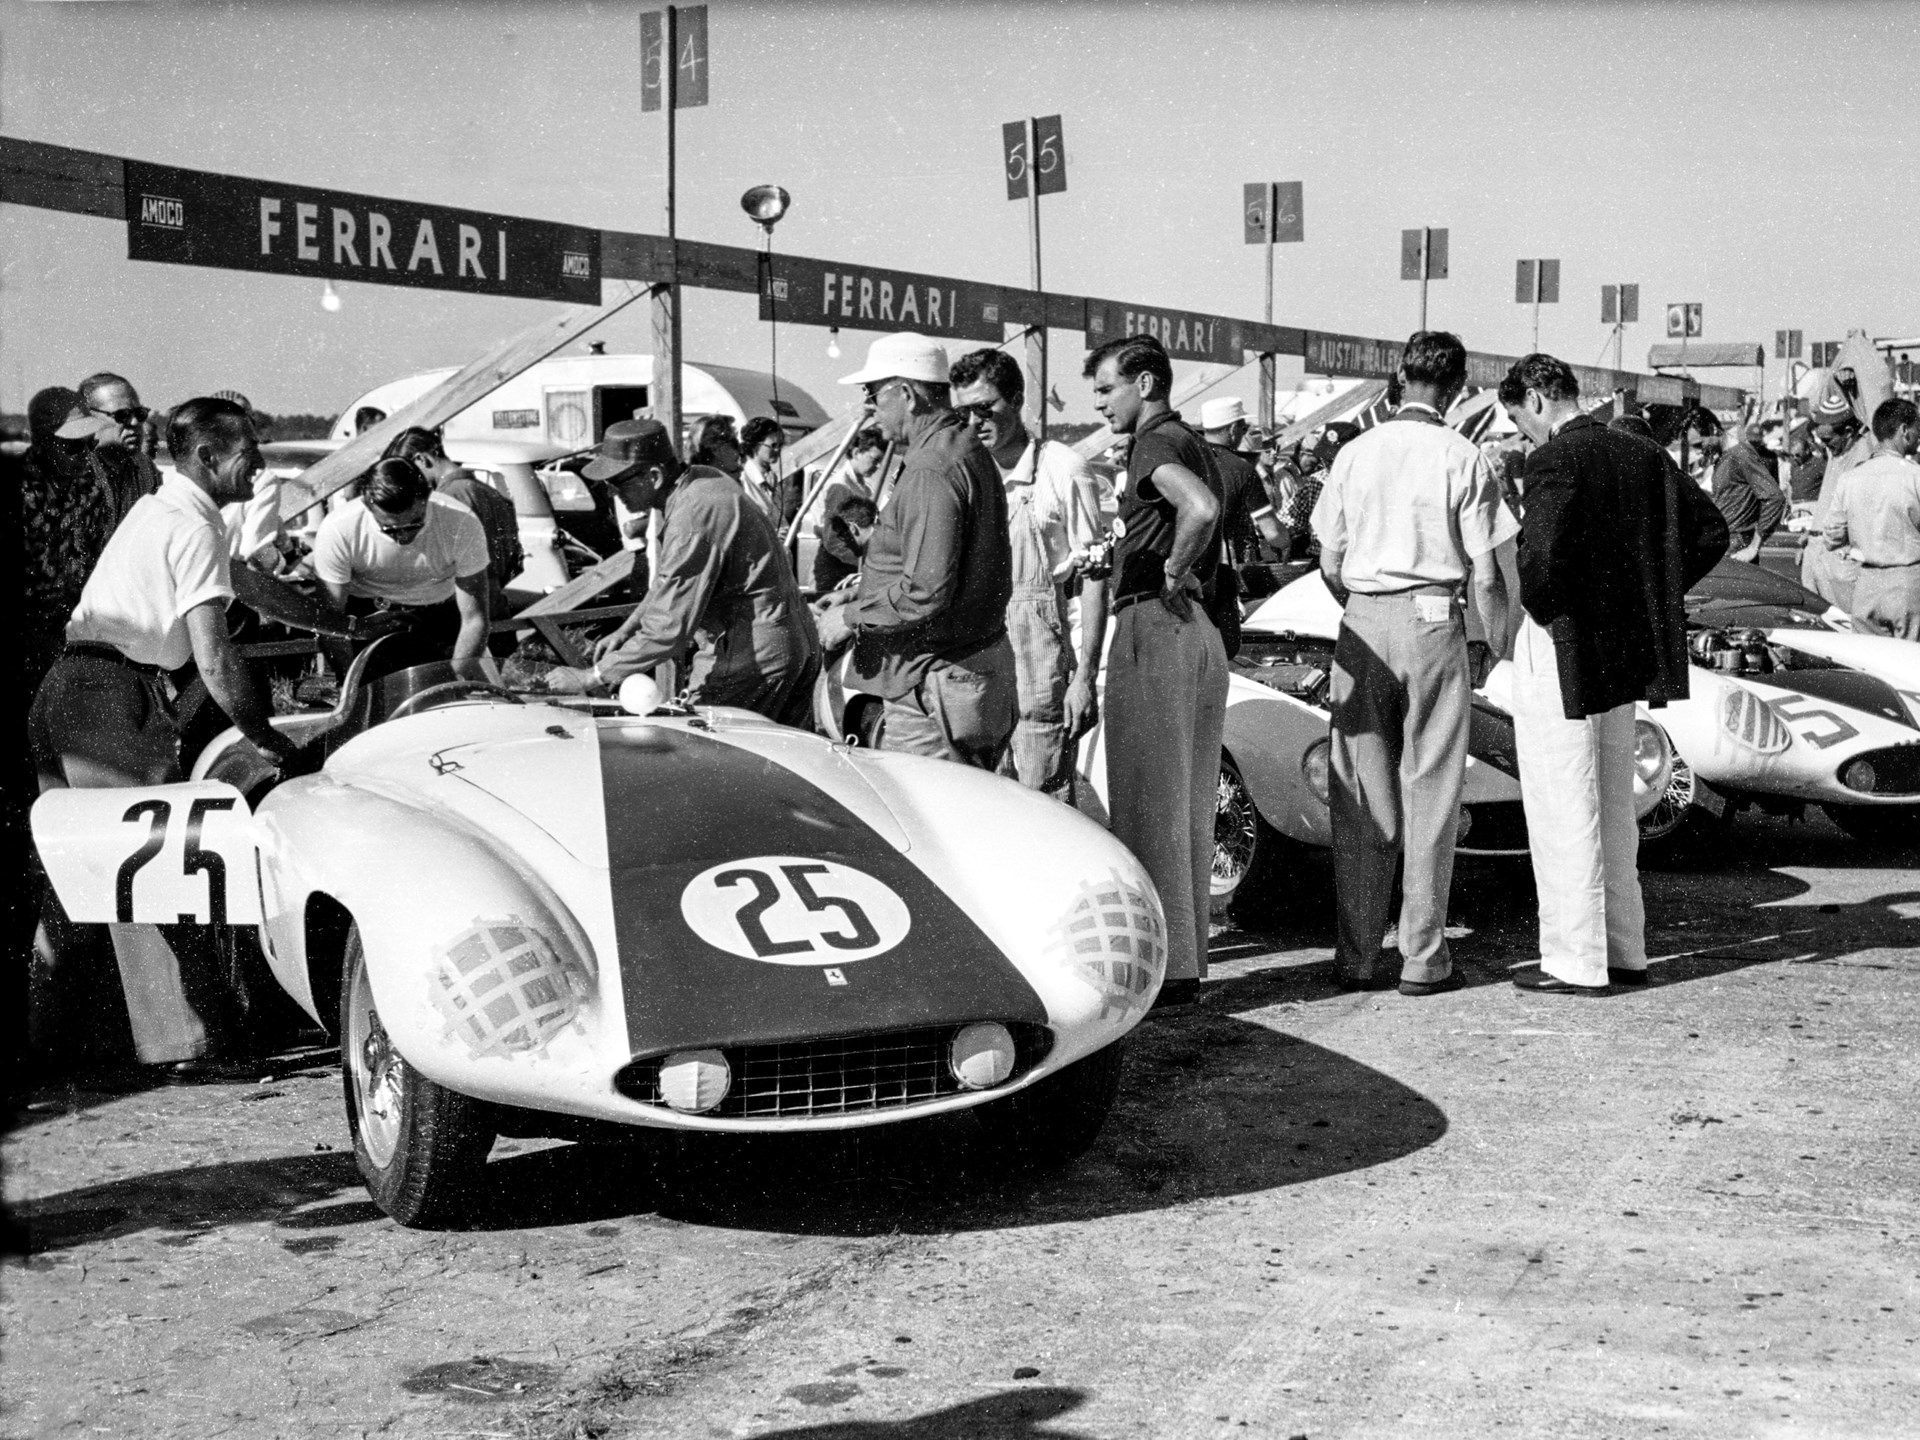 Chassis no. 0510 M awaits the start of the 1955 12 Hours of Sebring.